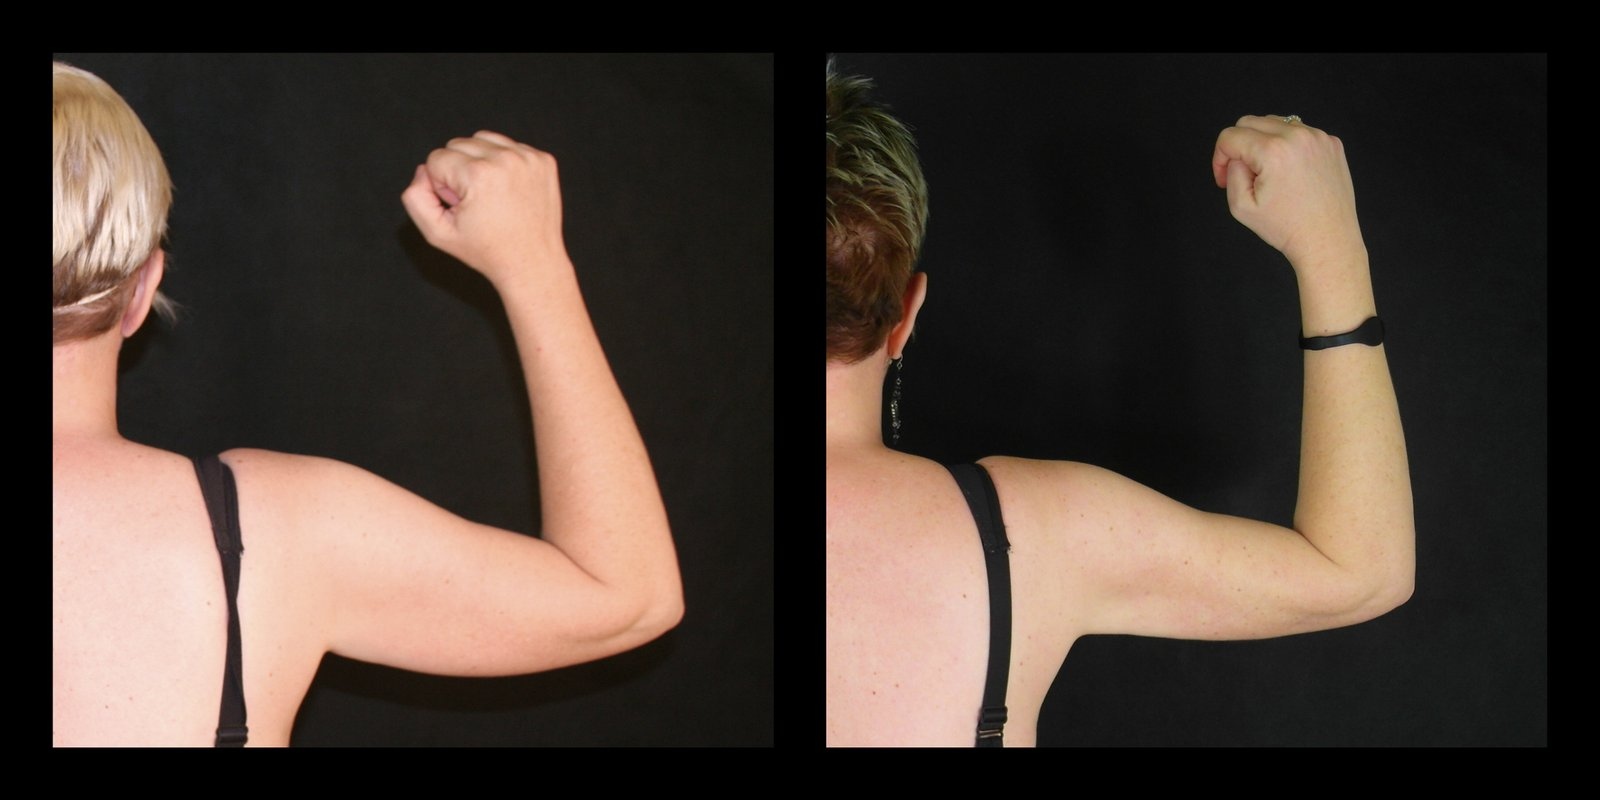 The Best Treatment for Skin Tightening on Your Arms